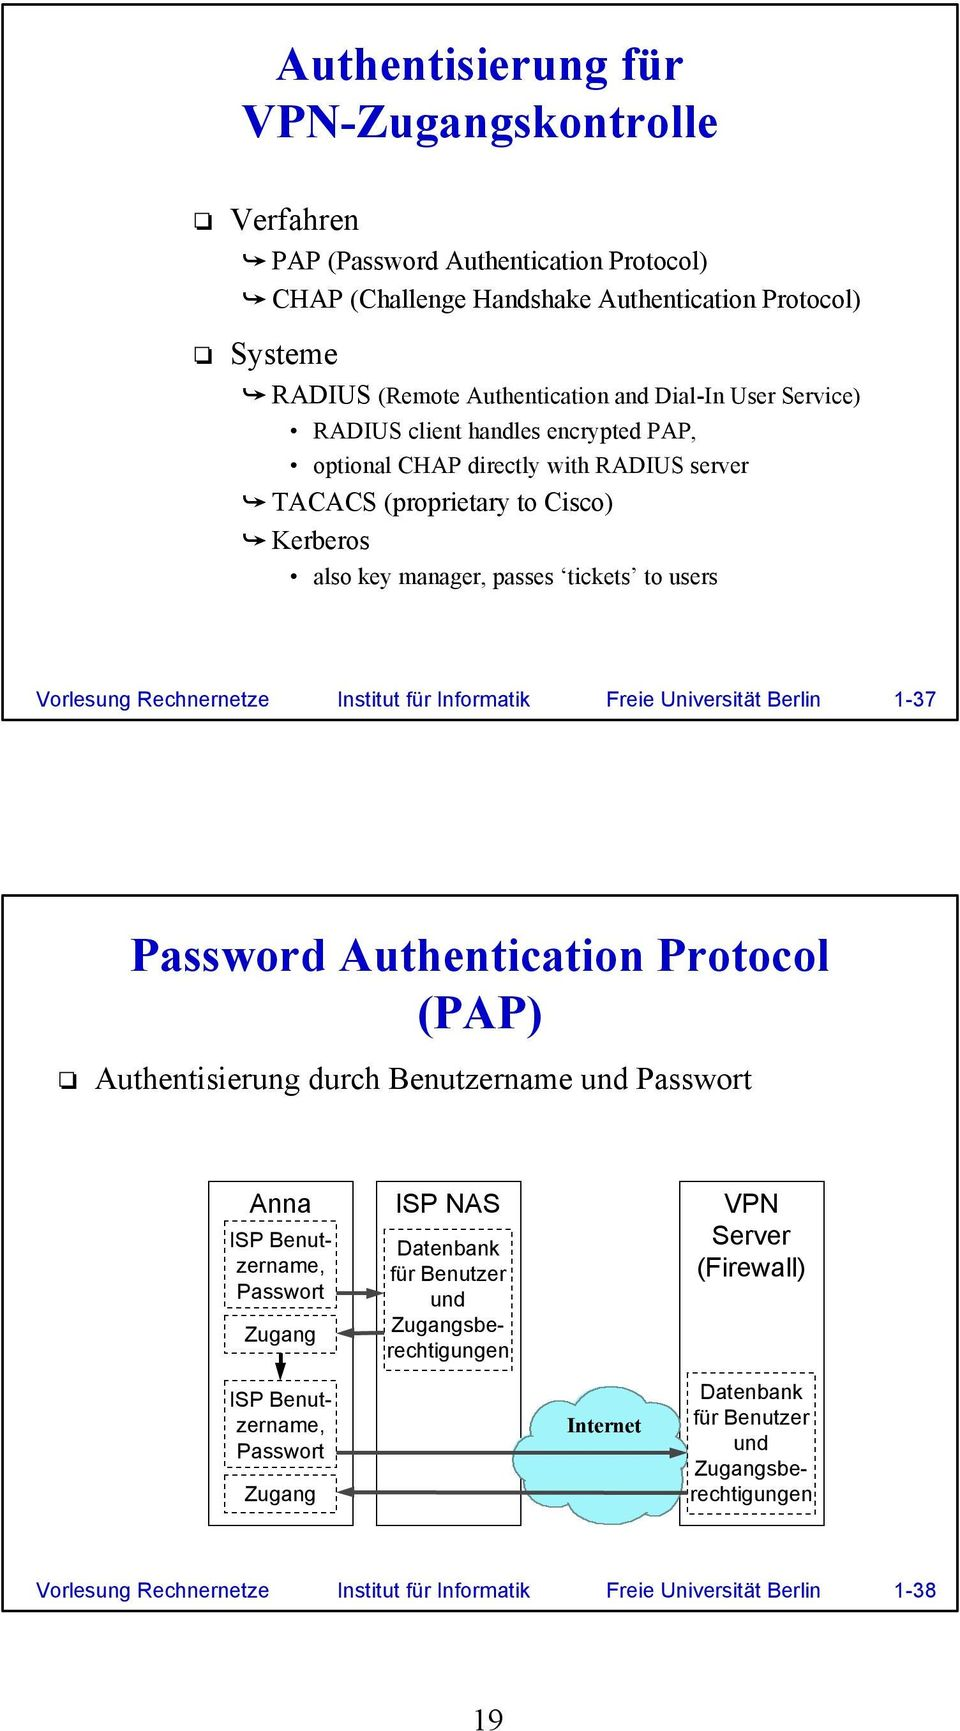 Institut für Informatik Freie Universität Berlin 1-37 Password Authentication Protocol (PAP) Authentisierung durch Benutzername und Passwort ISP Benutzername, Passwort Zugang ISP NAS Datenbank für